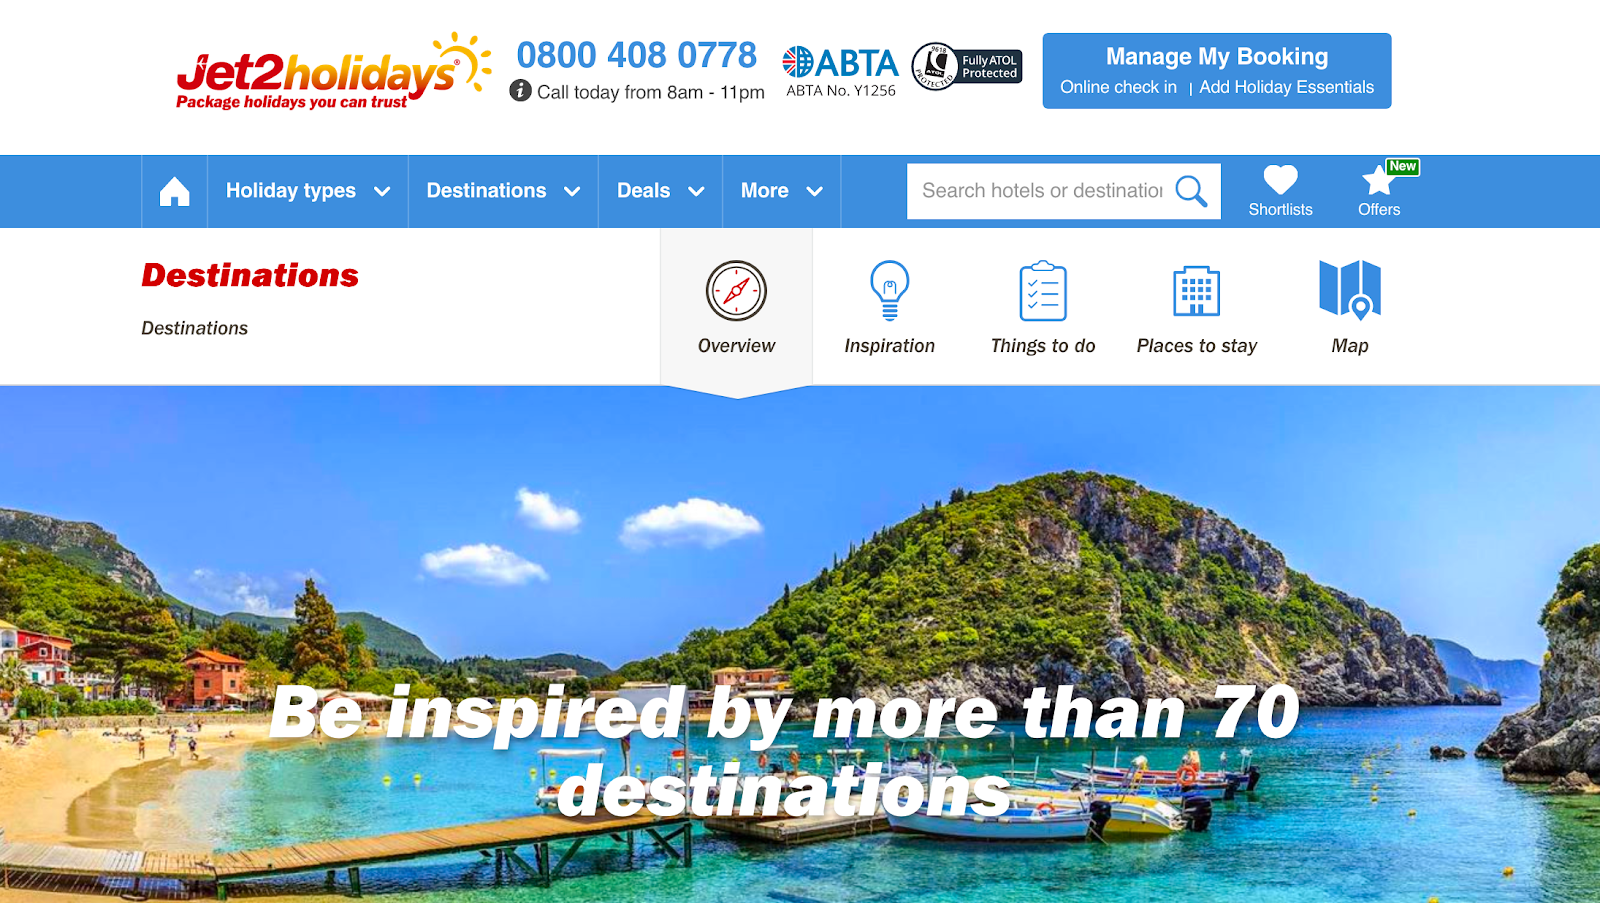 Jet2Holidays - Be inspired by over 70 destinations